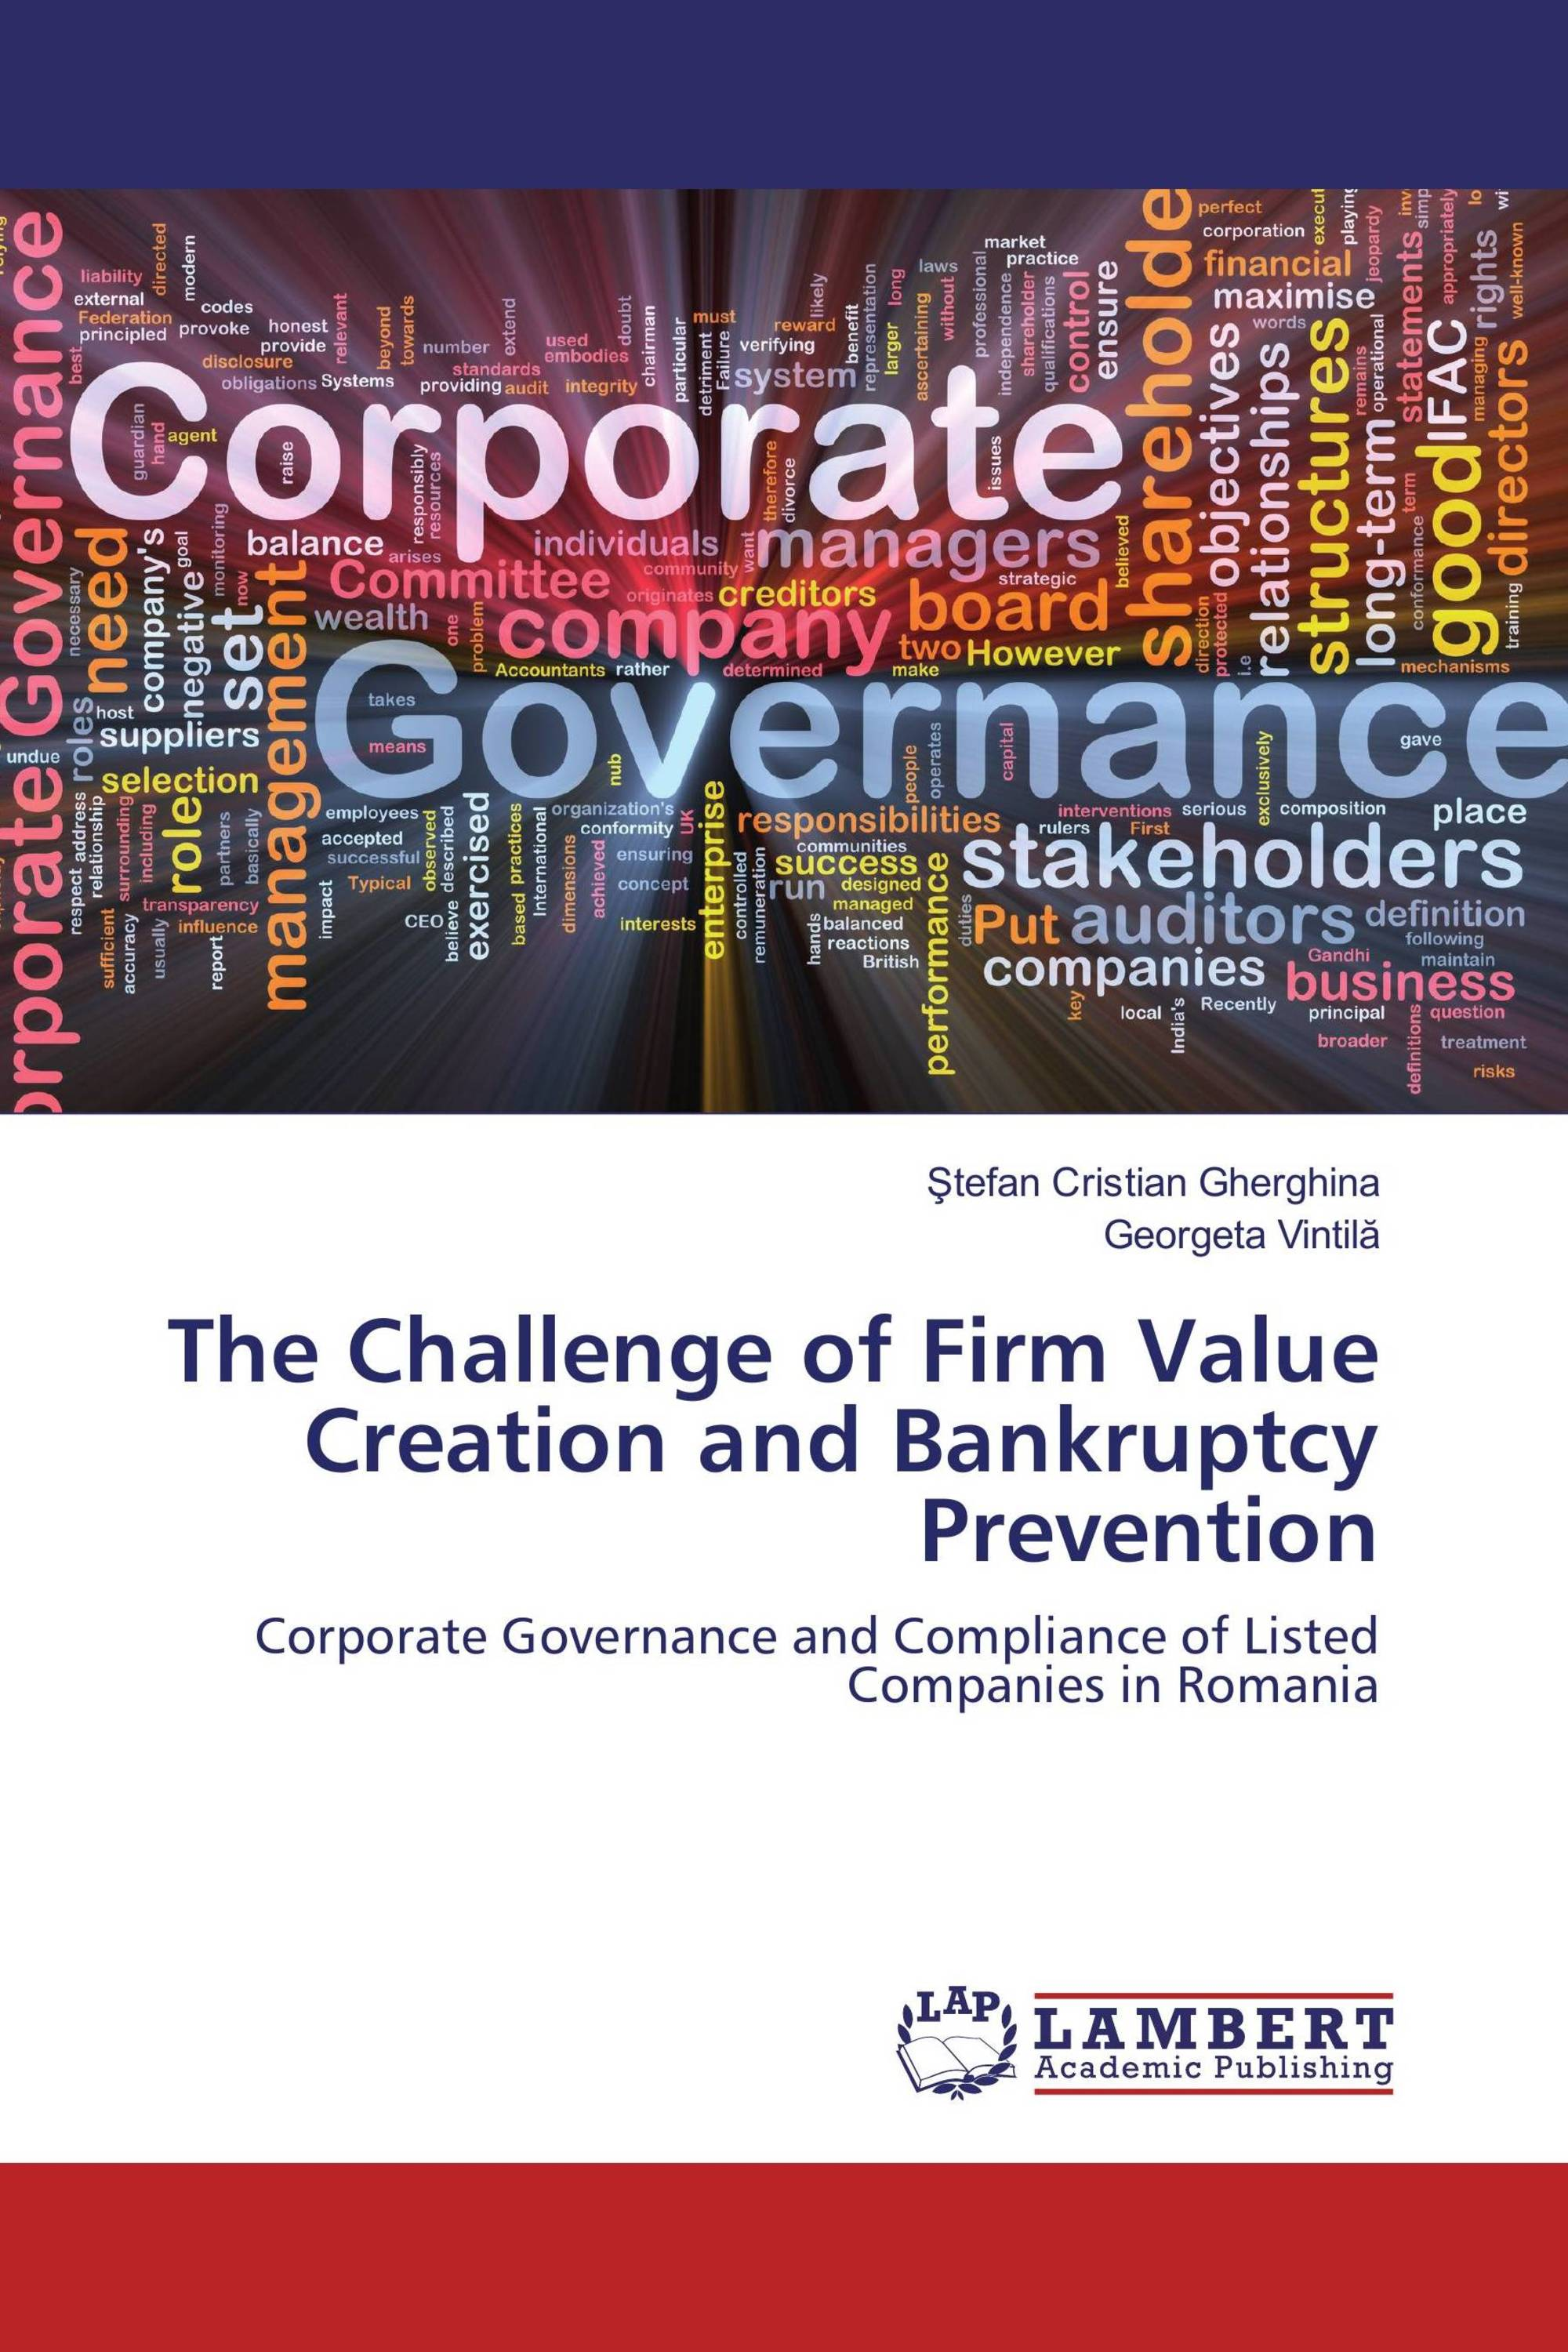 The Challenge of Firm Value Creation and Bankruptcy Prevention